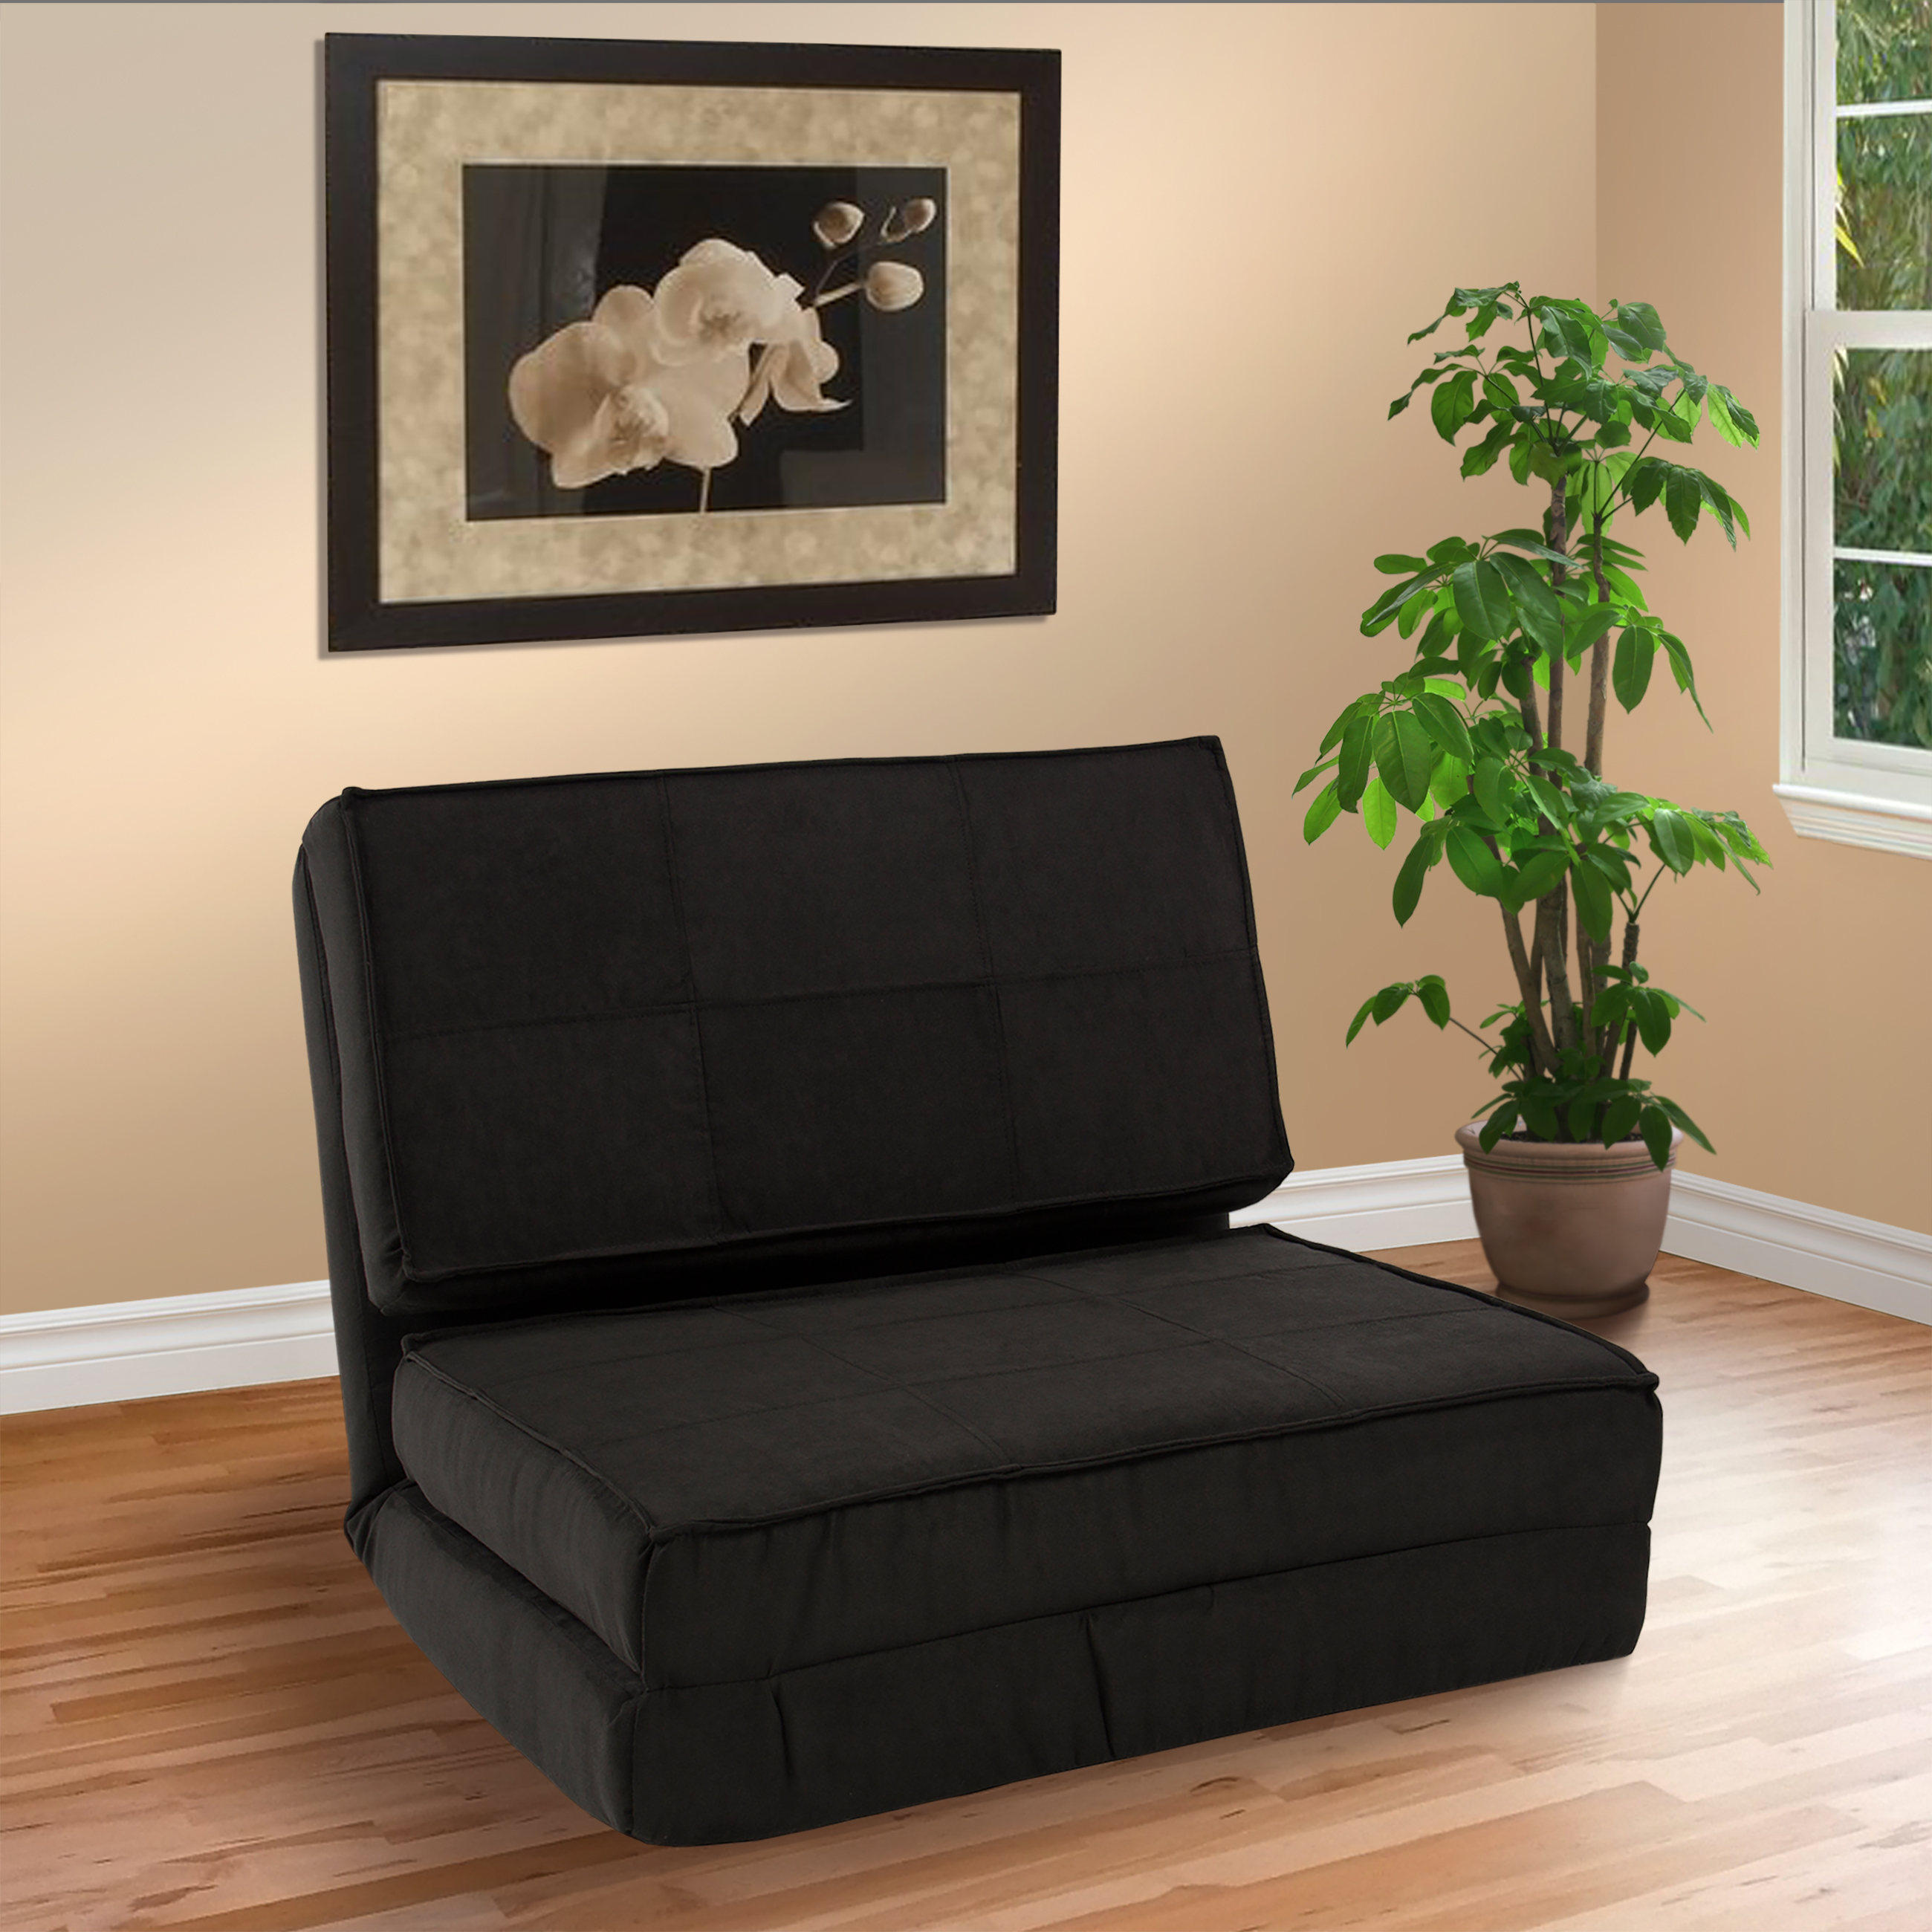 Fold Down Chair Flip Out Lounger Convertible Sleeper Bed Couch Game Dorm Guest